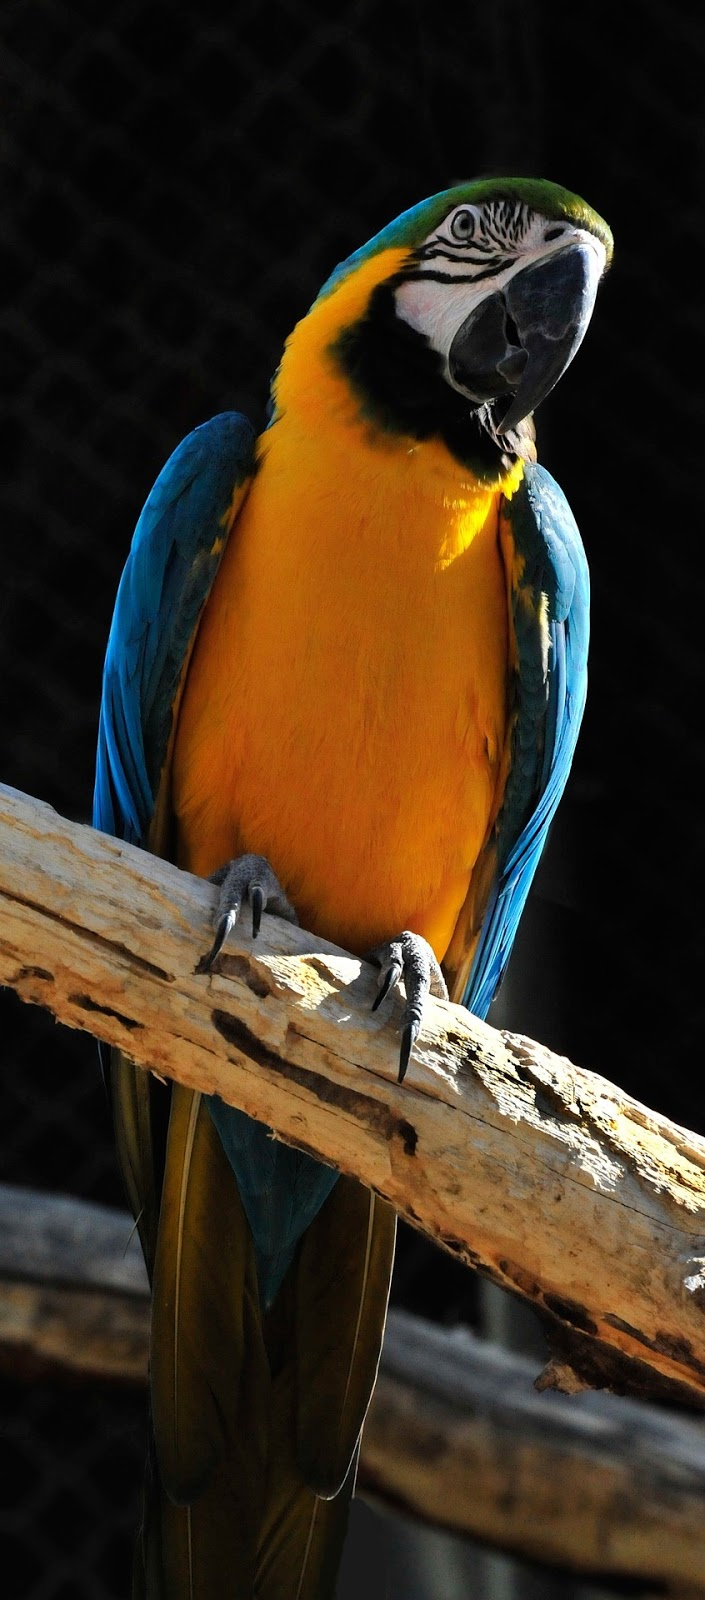 Picture of a beautiful macaw.